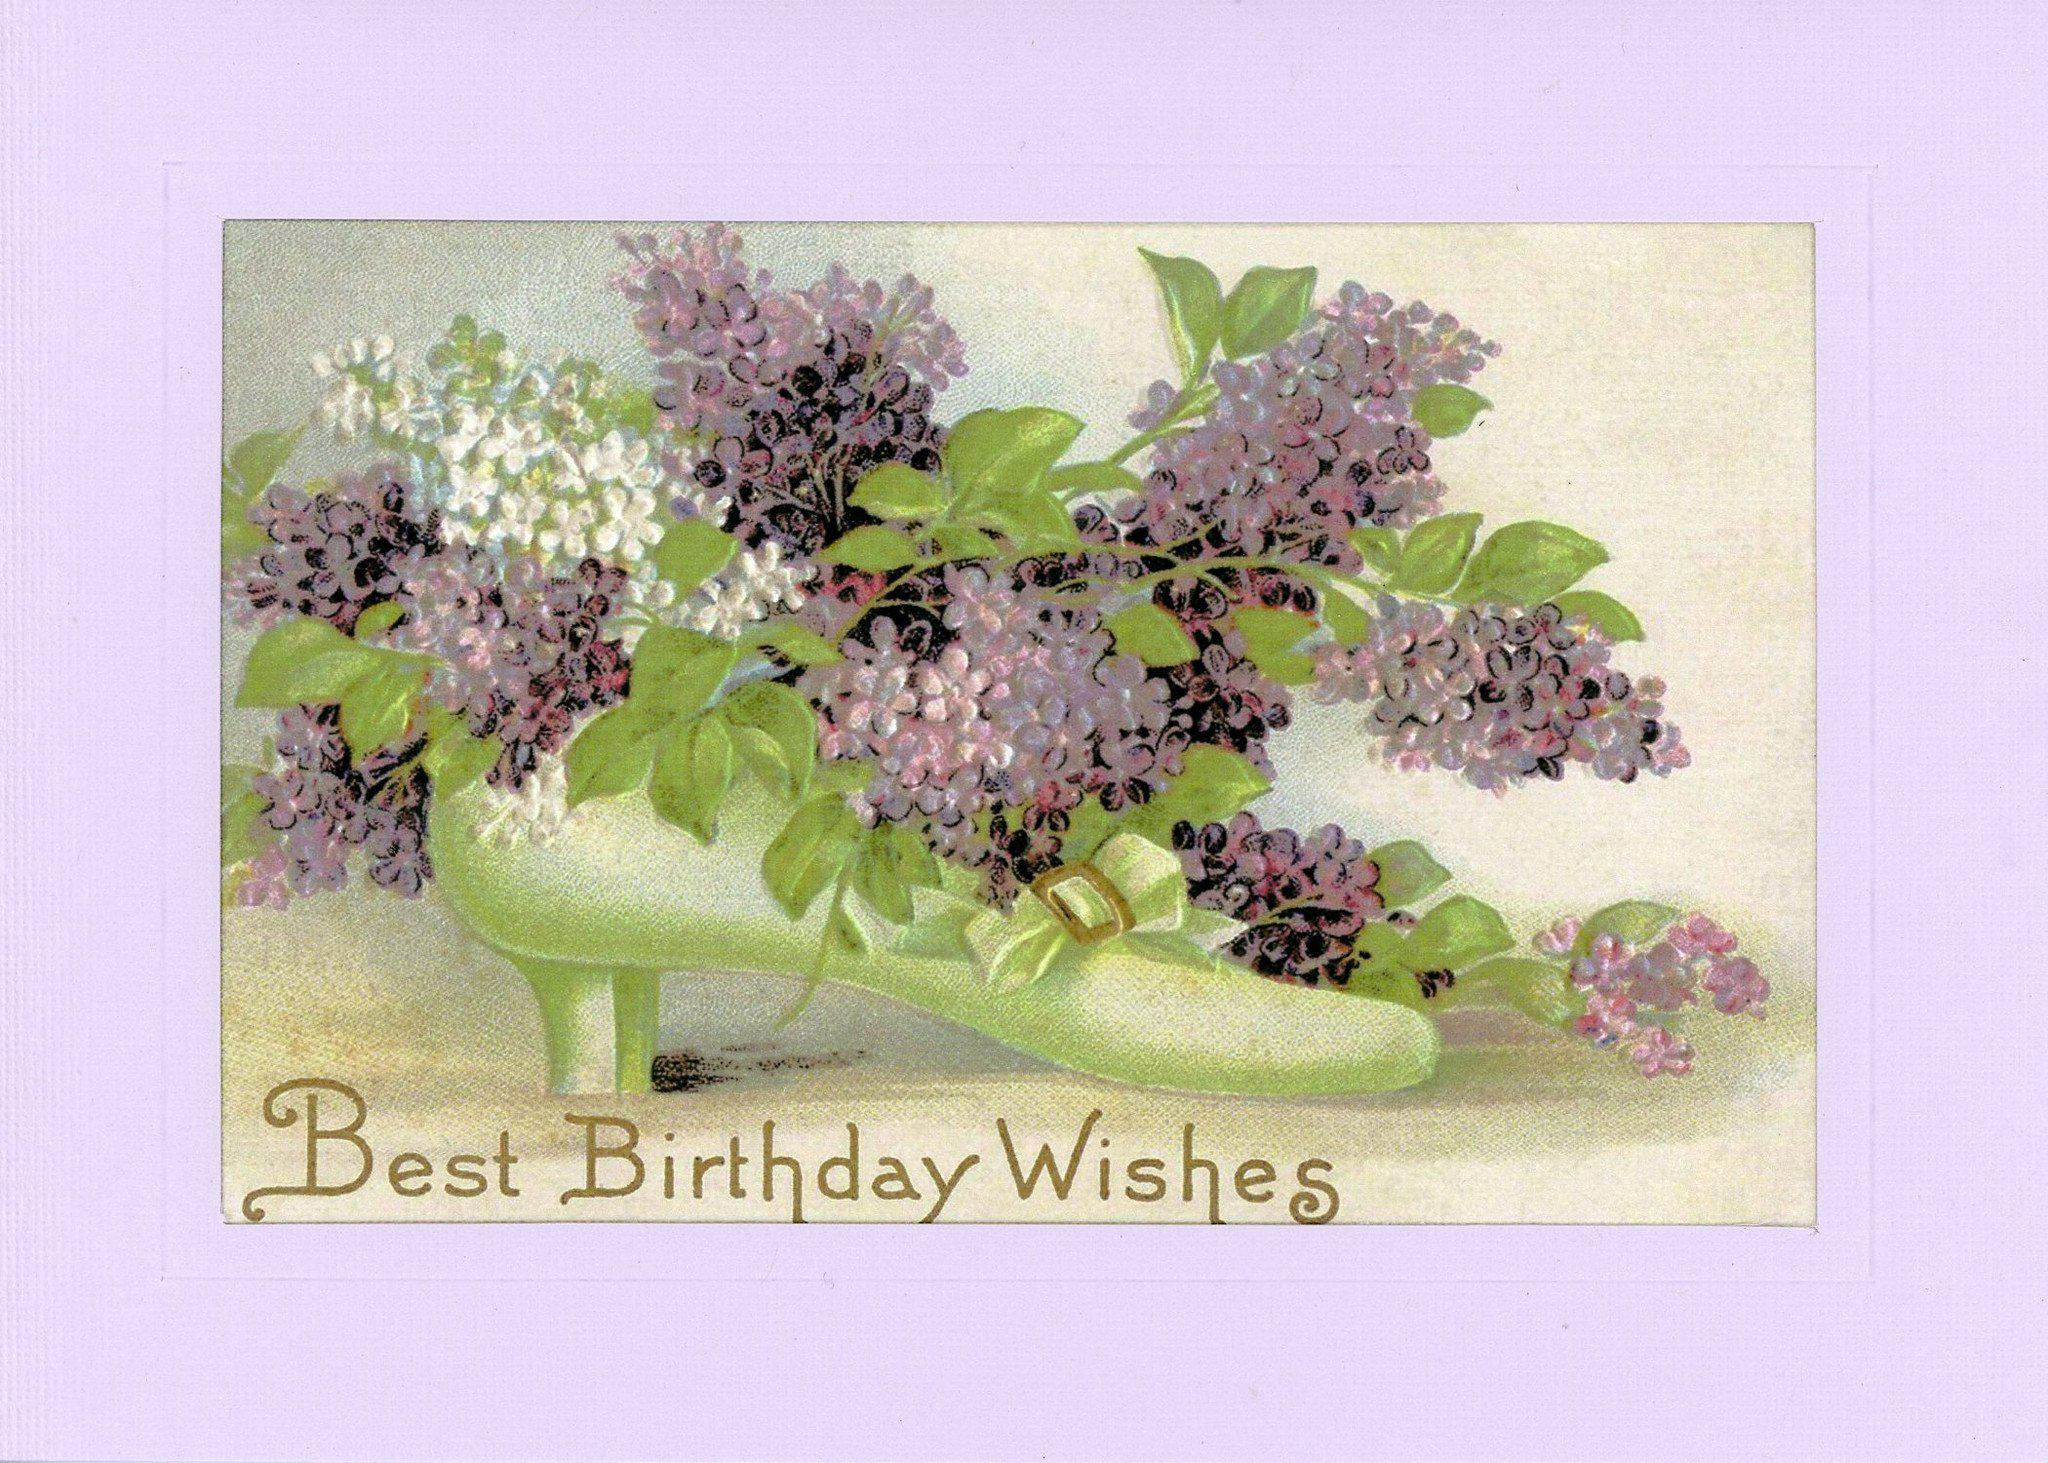 Best Birthday Wishes-Greetings from the Past-Plymouth Cards